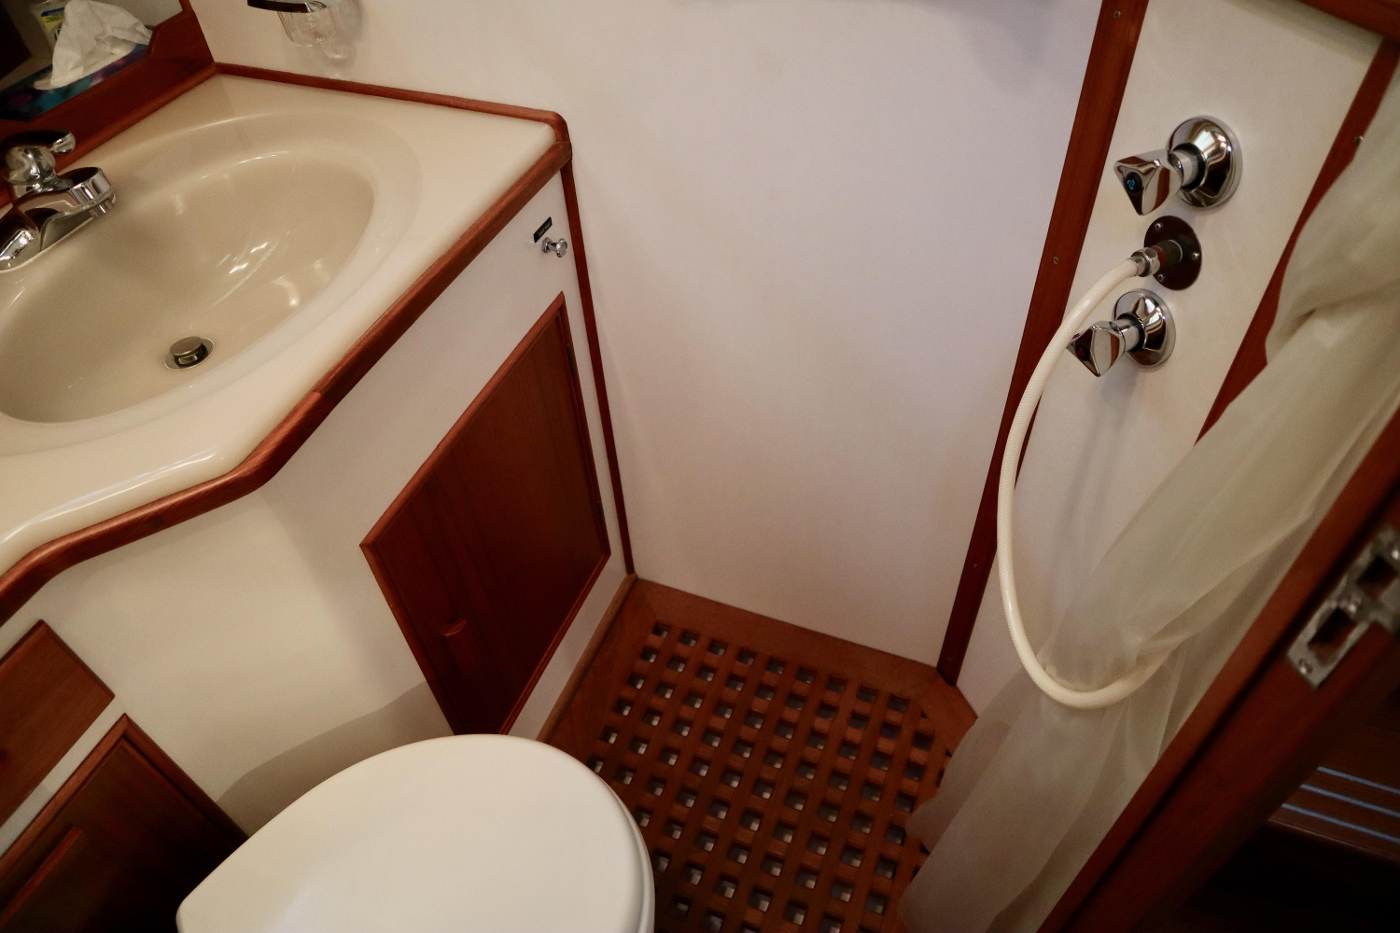 1995 Grand Banks 36 Classic, Forward Head and Shower